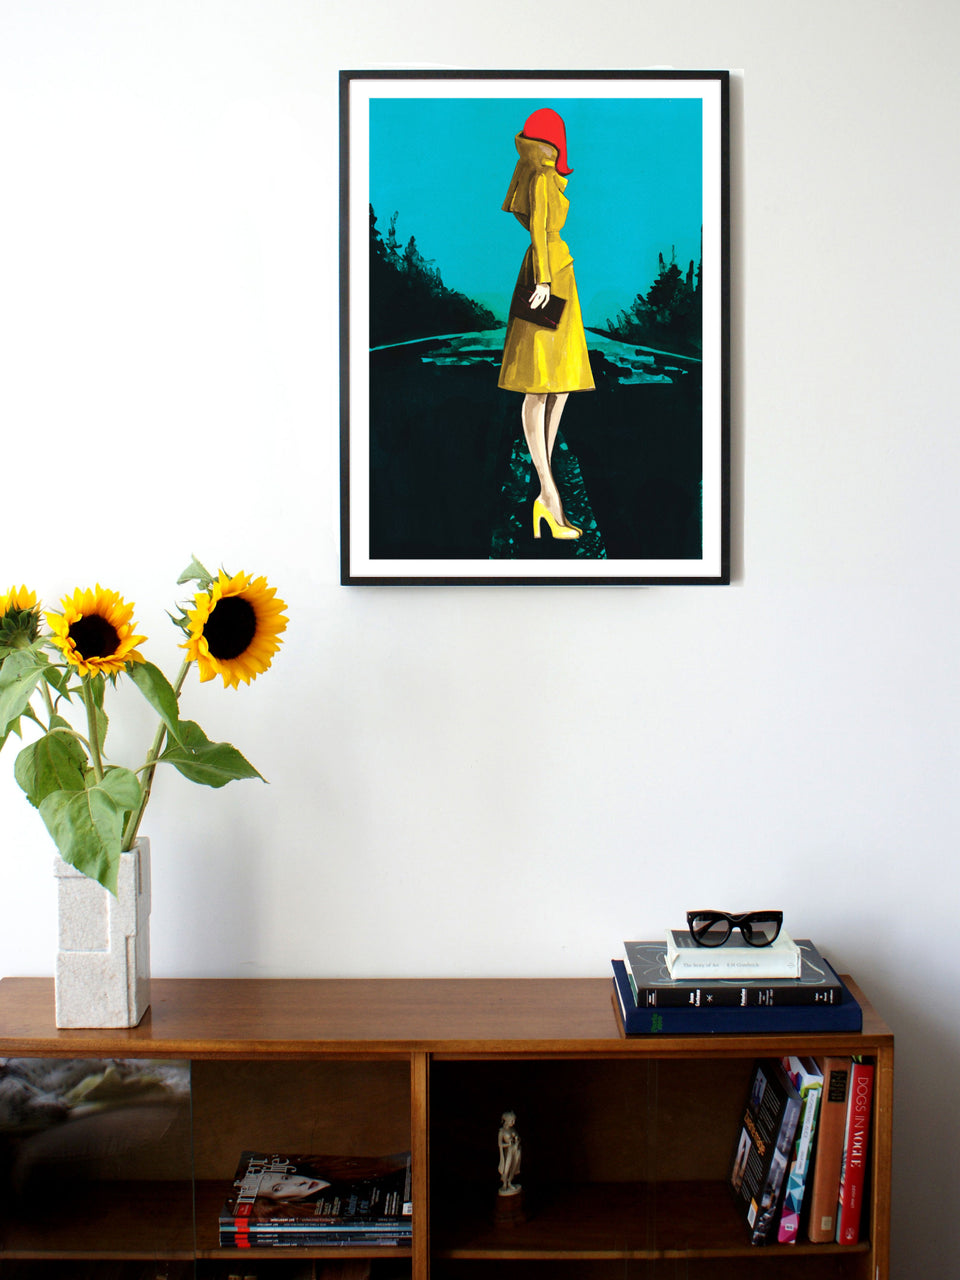 Fashion illustration print of Yellow Raincoat by Sjoukje Bierma - woman waiting - 60 x 80 cm framed